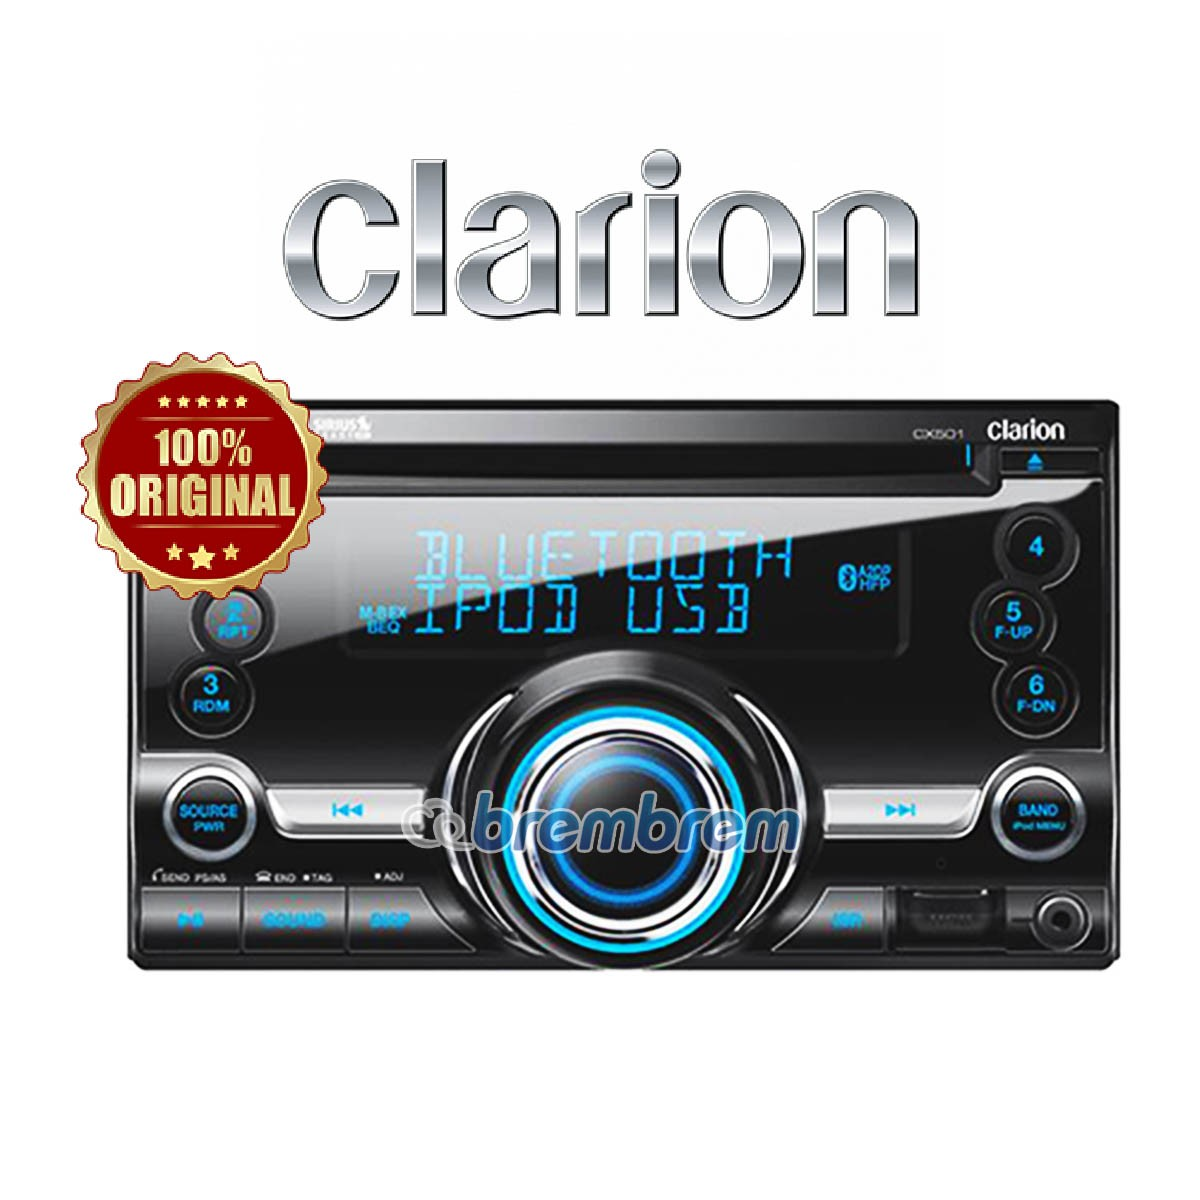 CLARION CX 501 A - HEAD UNIT DOUBLE DIN